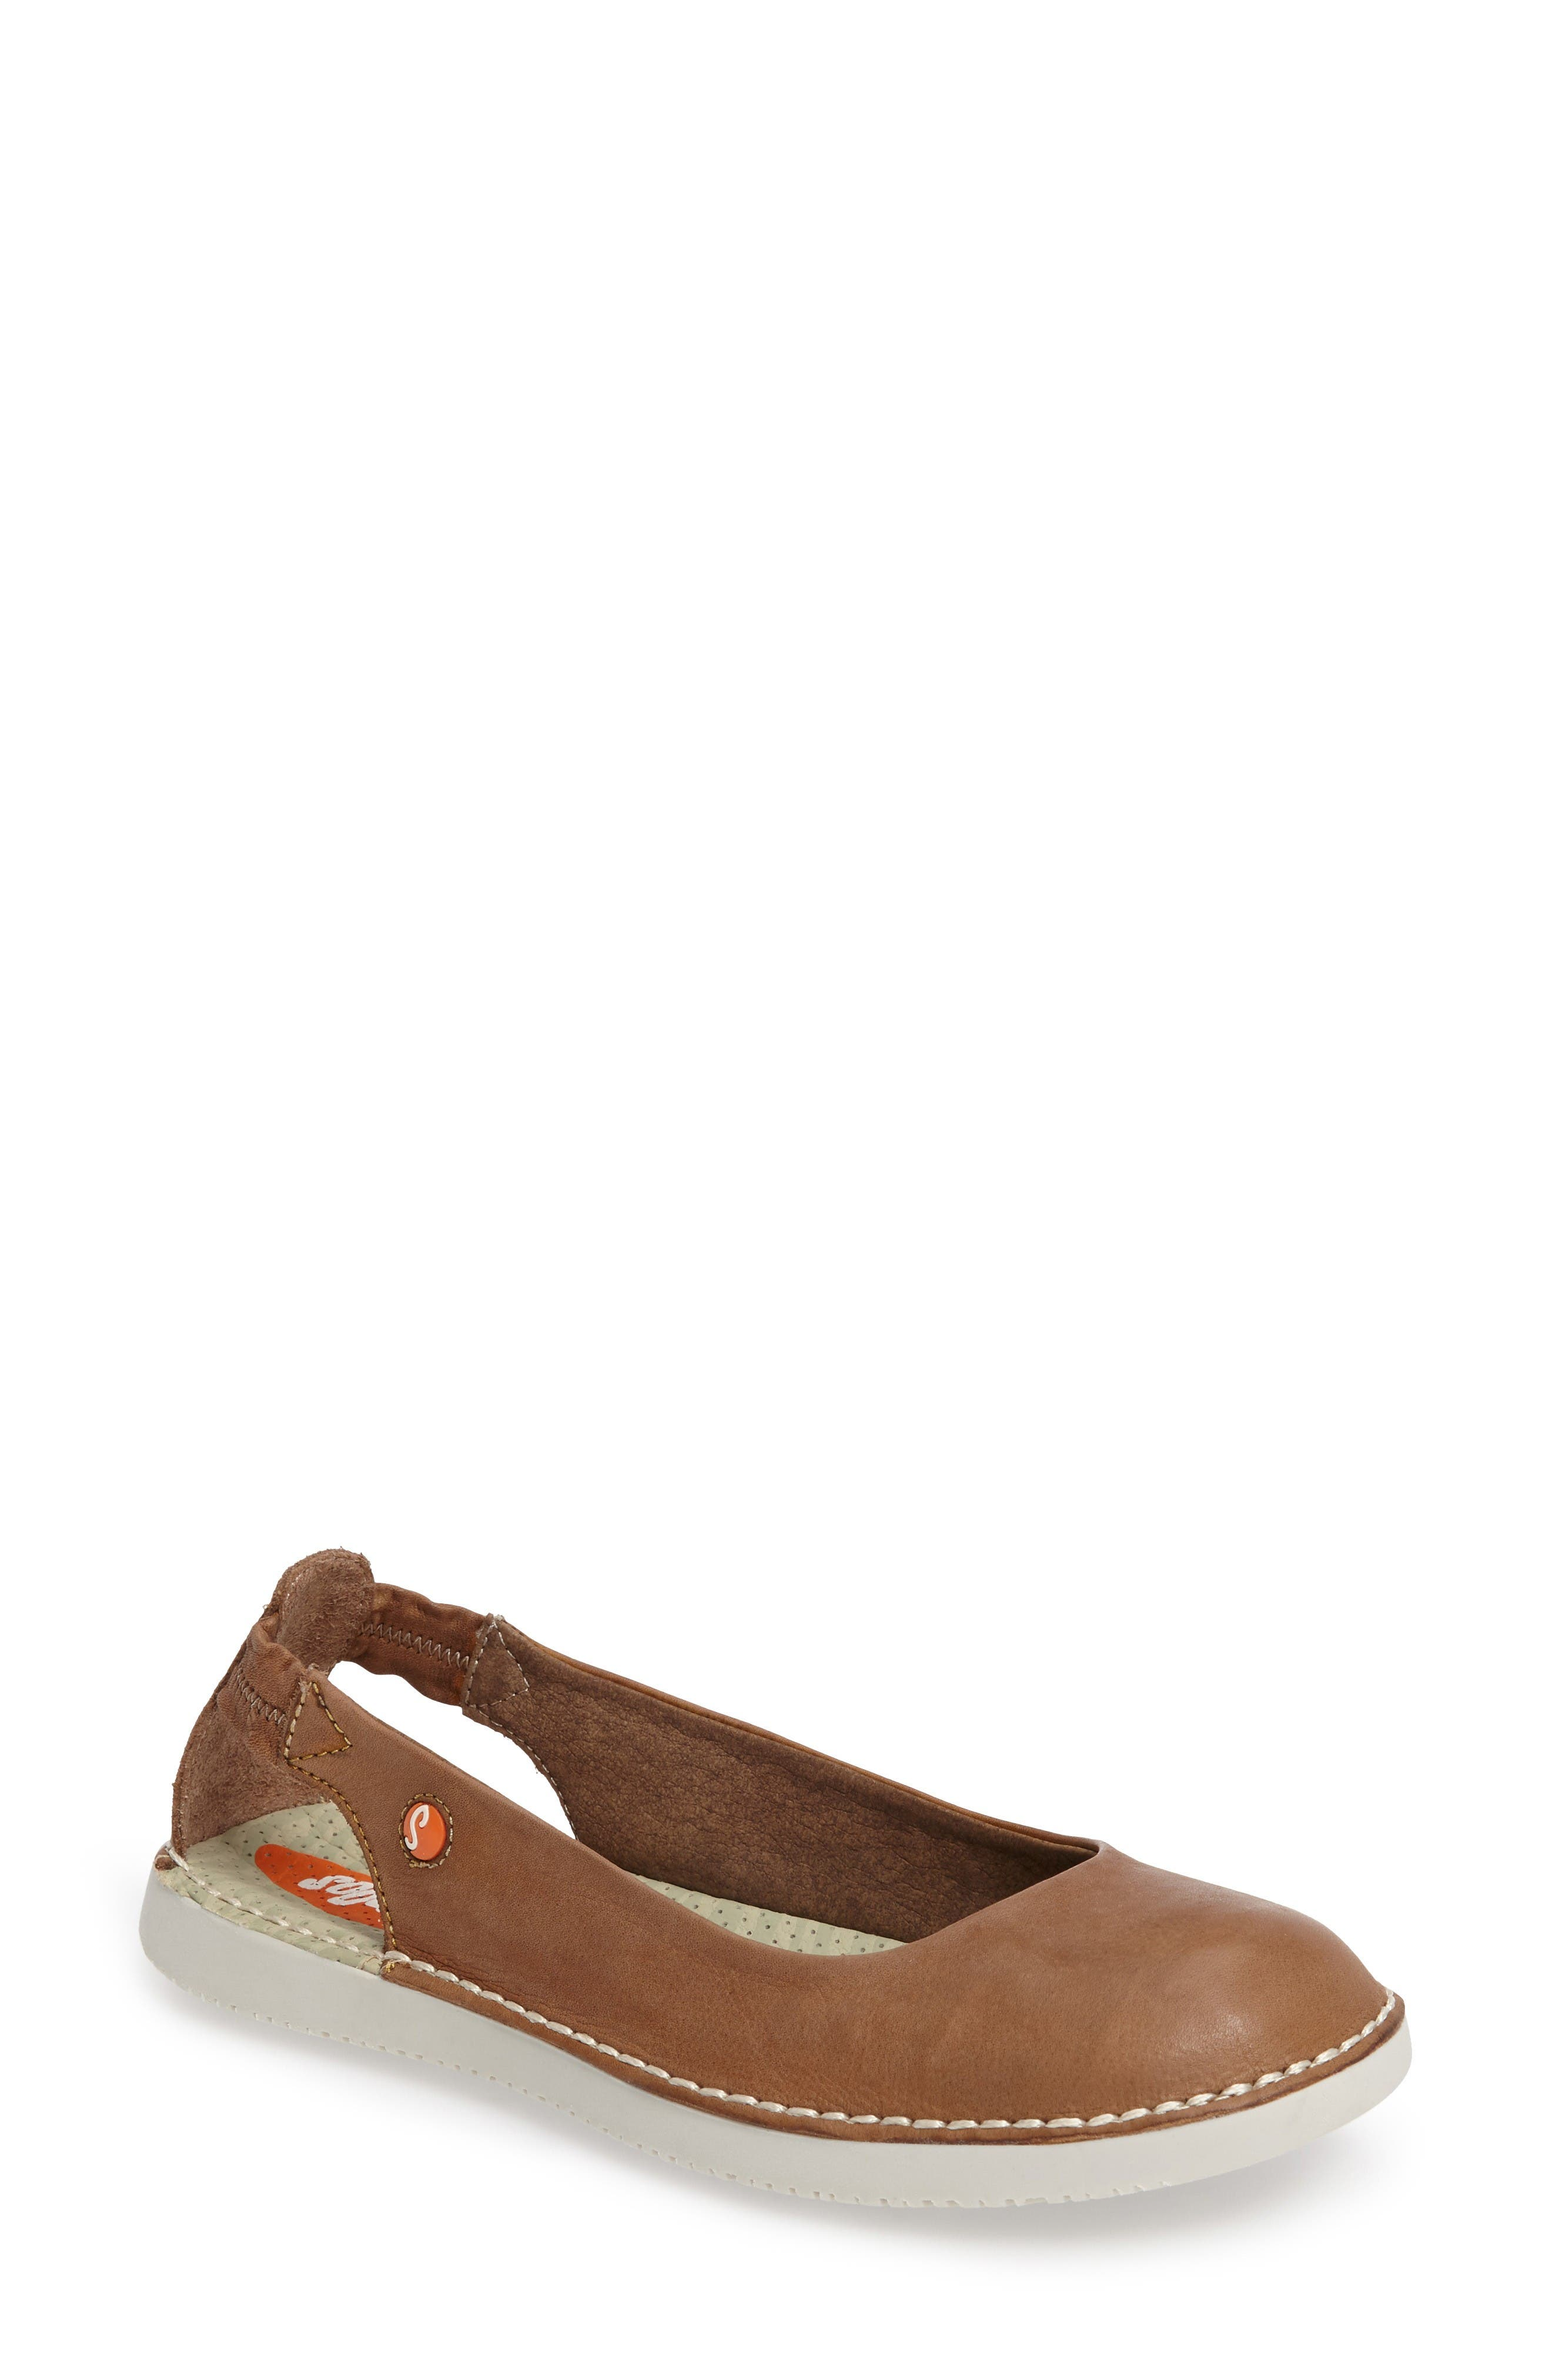 Softinos by Fly London Tor Ballerina Flat (Women)